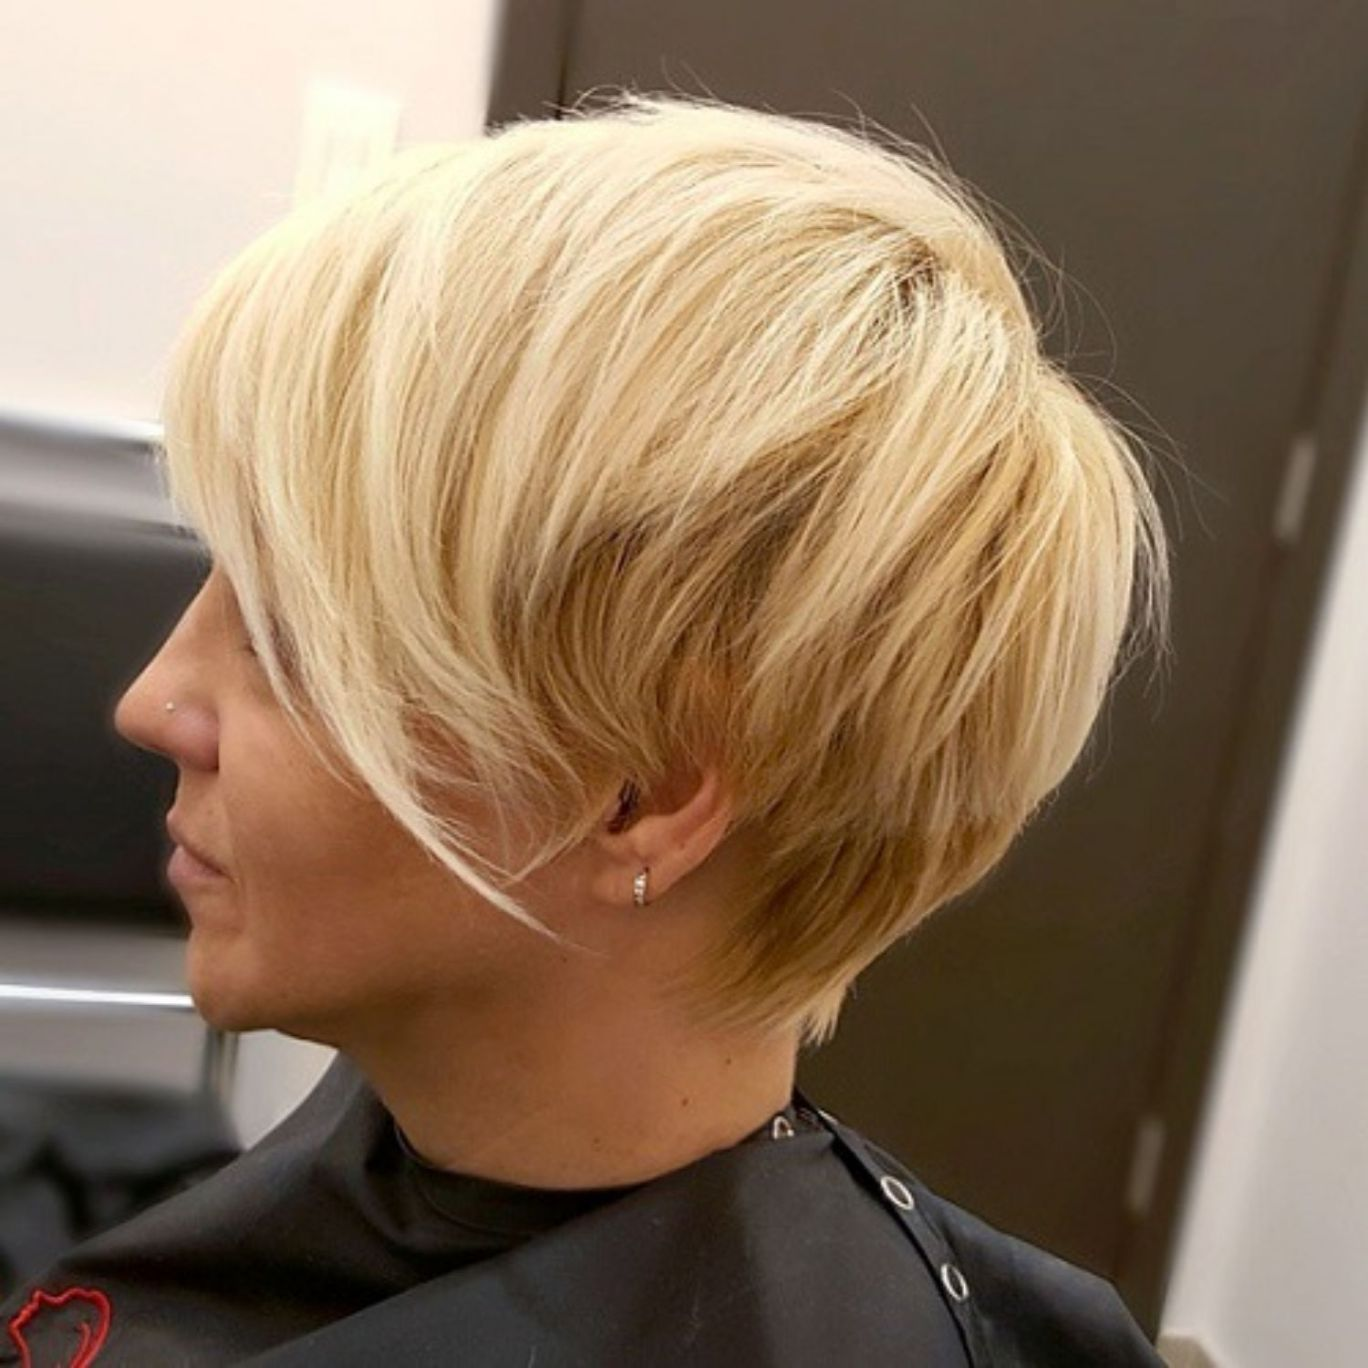 Overwhelming Ideas for Short Choppy Haircuts in Hairs